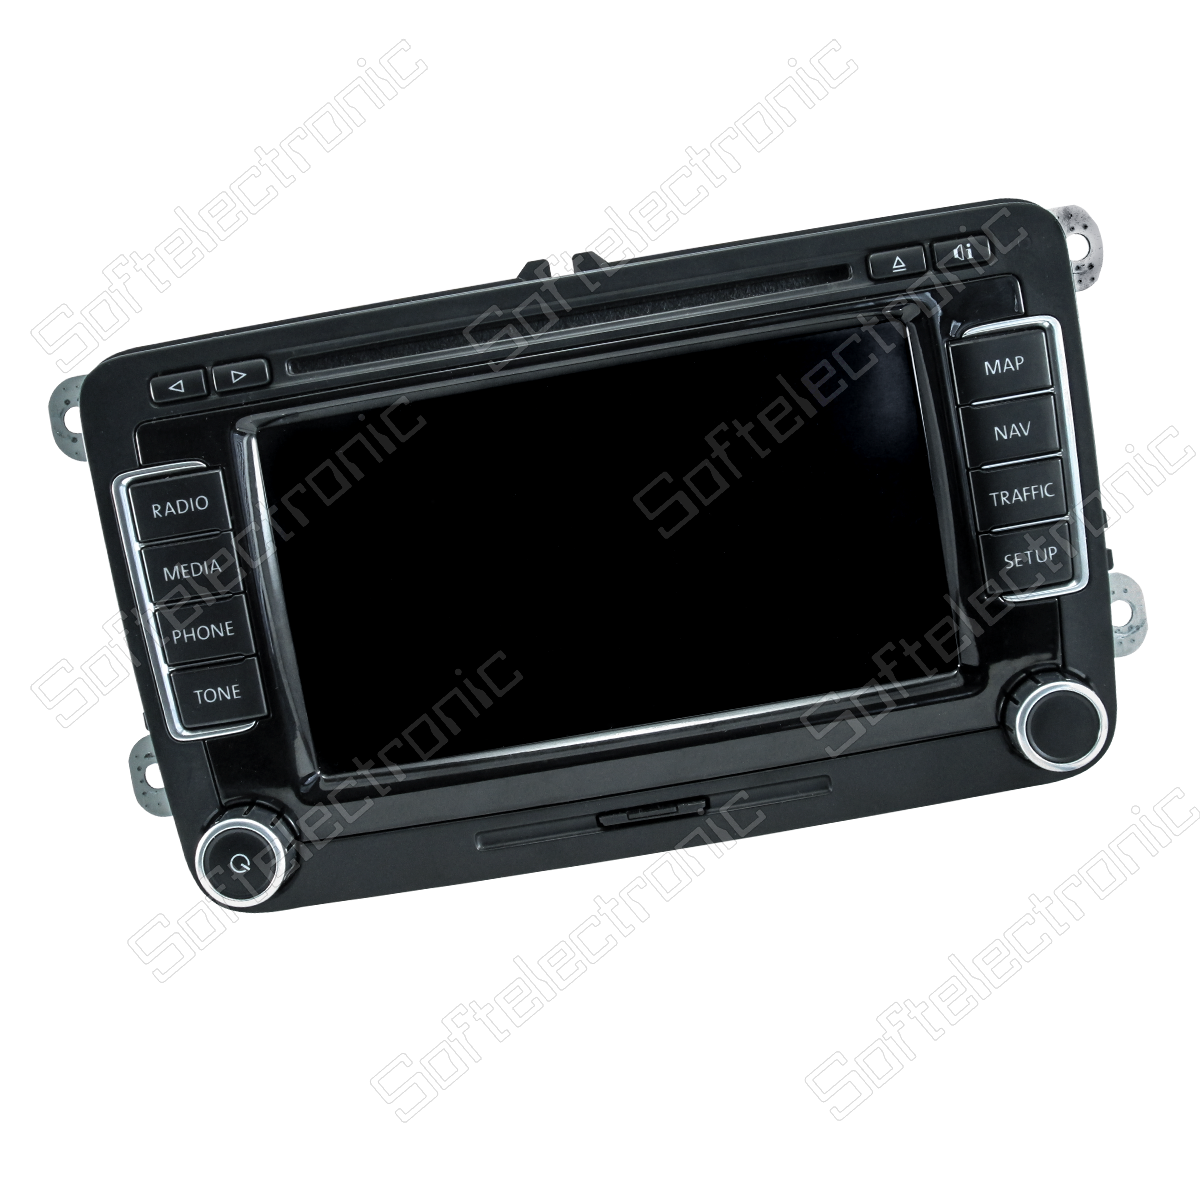 Repair Navigation Audi RNS-510